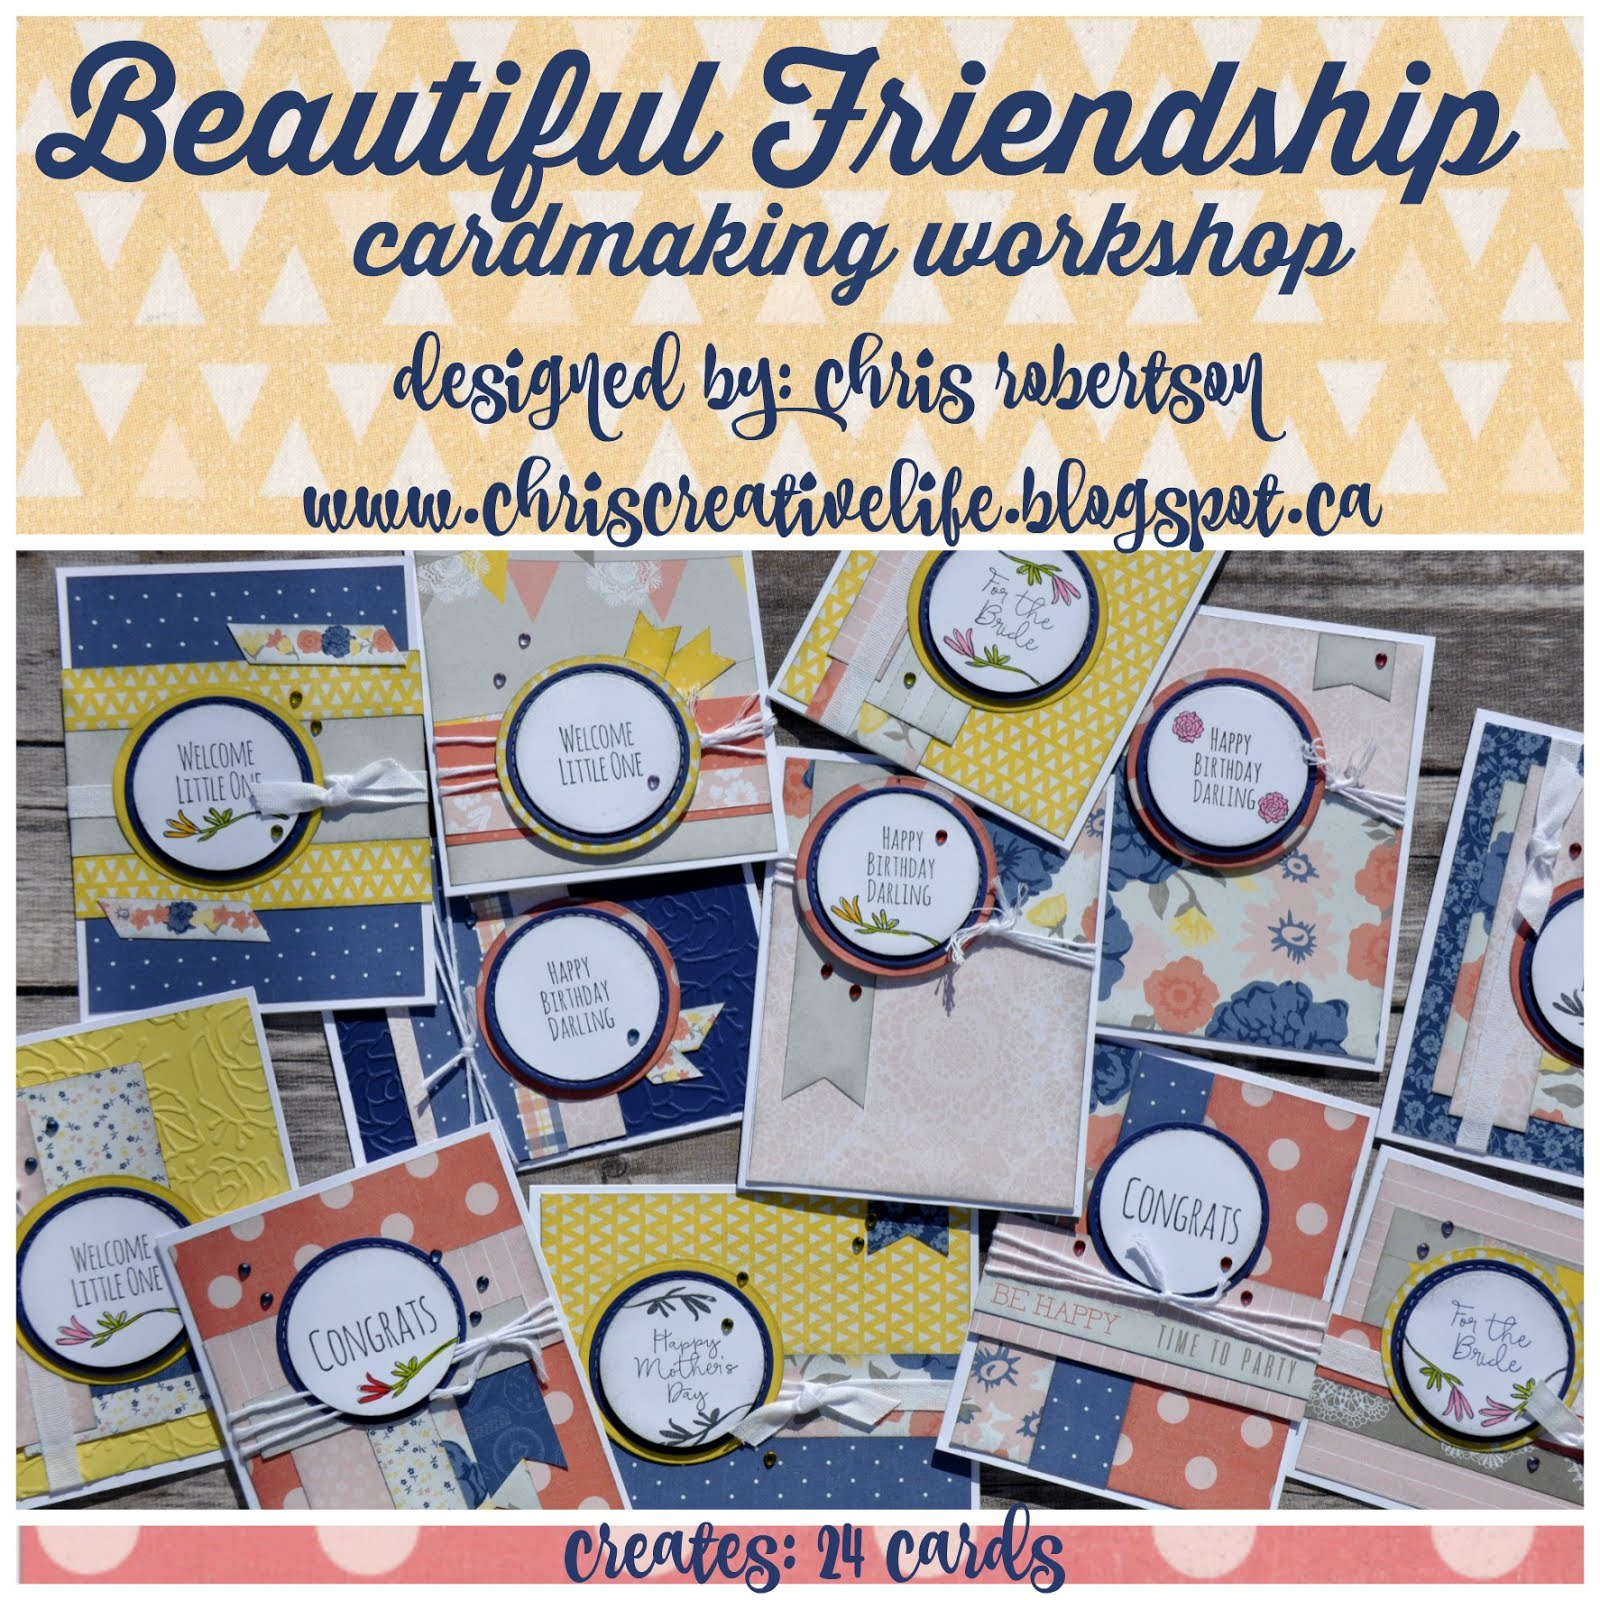 Beautiful Friendship Cardmaking Workshop